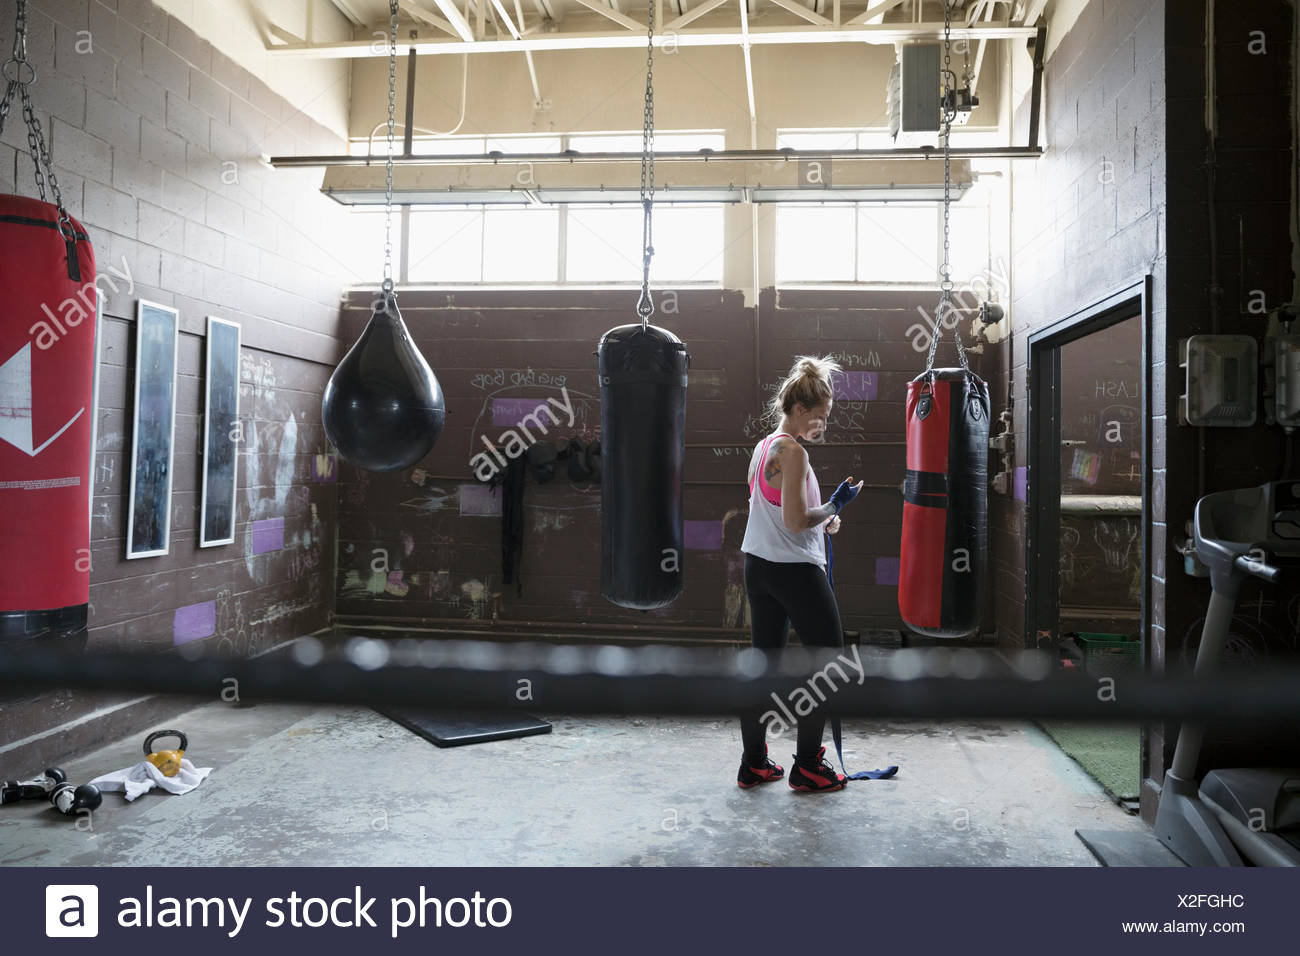 Female boxer wrapping wrist at punching bag in gritty gym - Stock Image